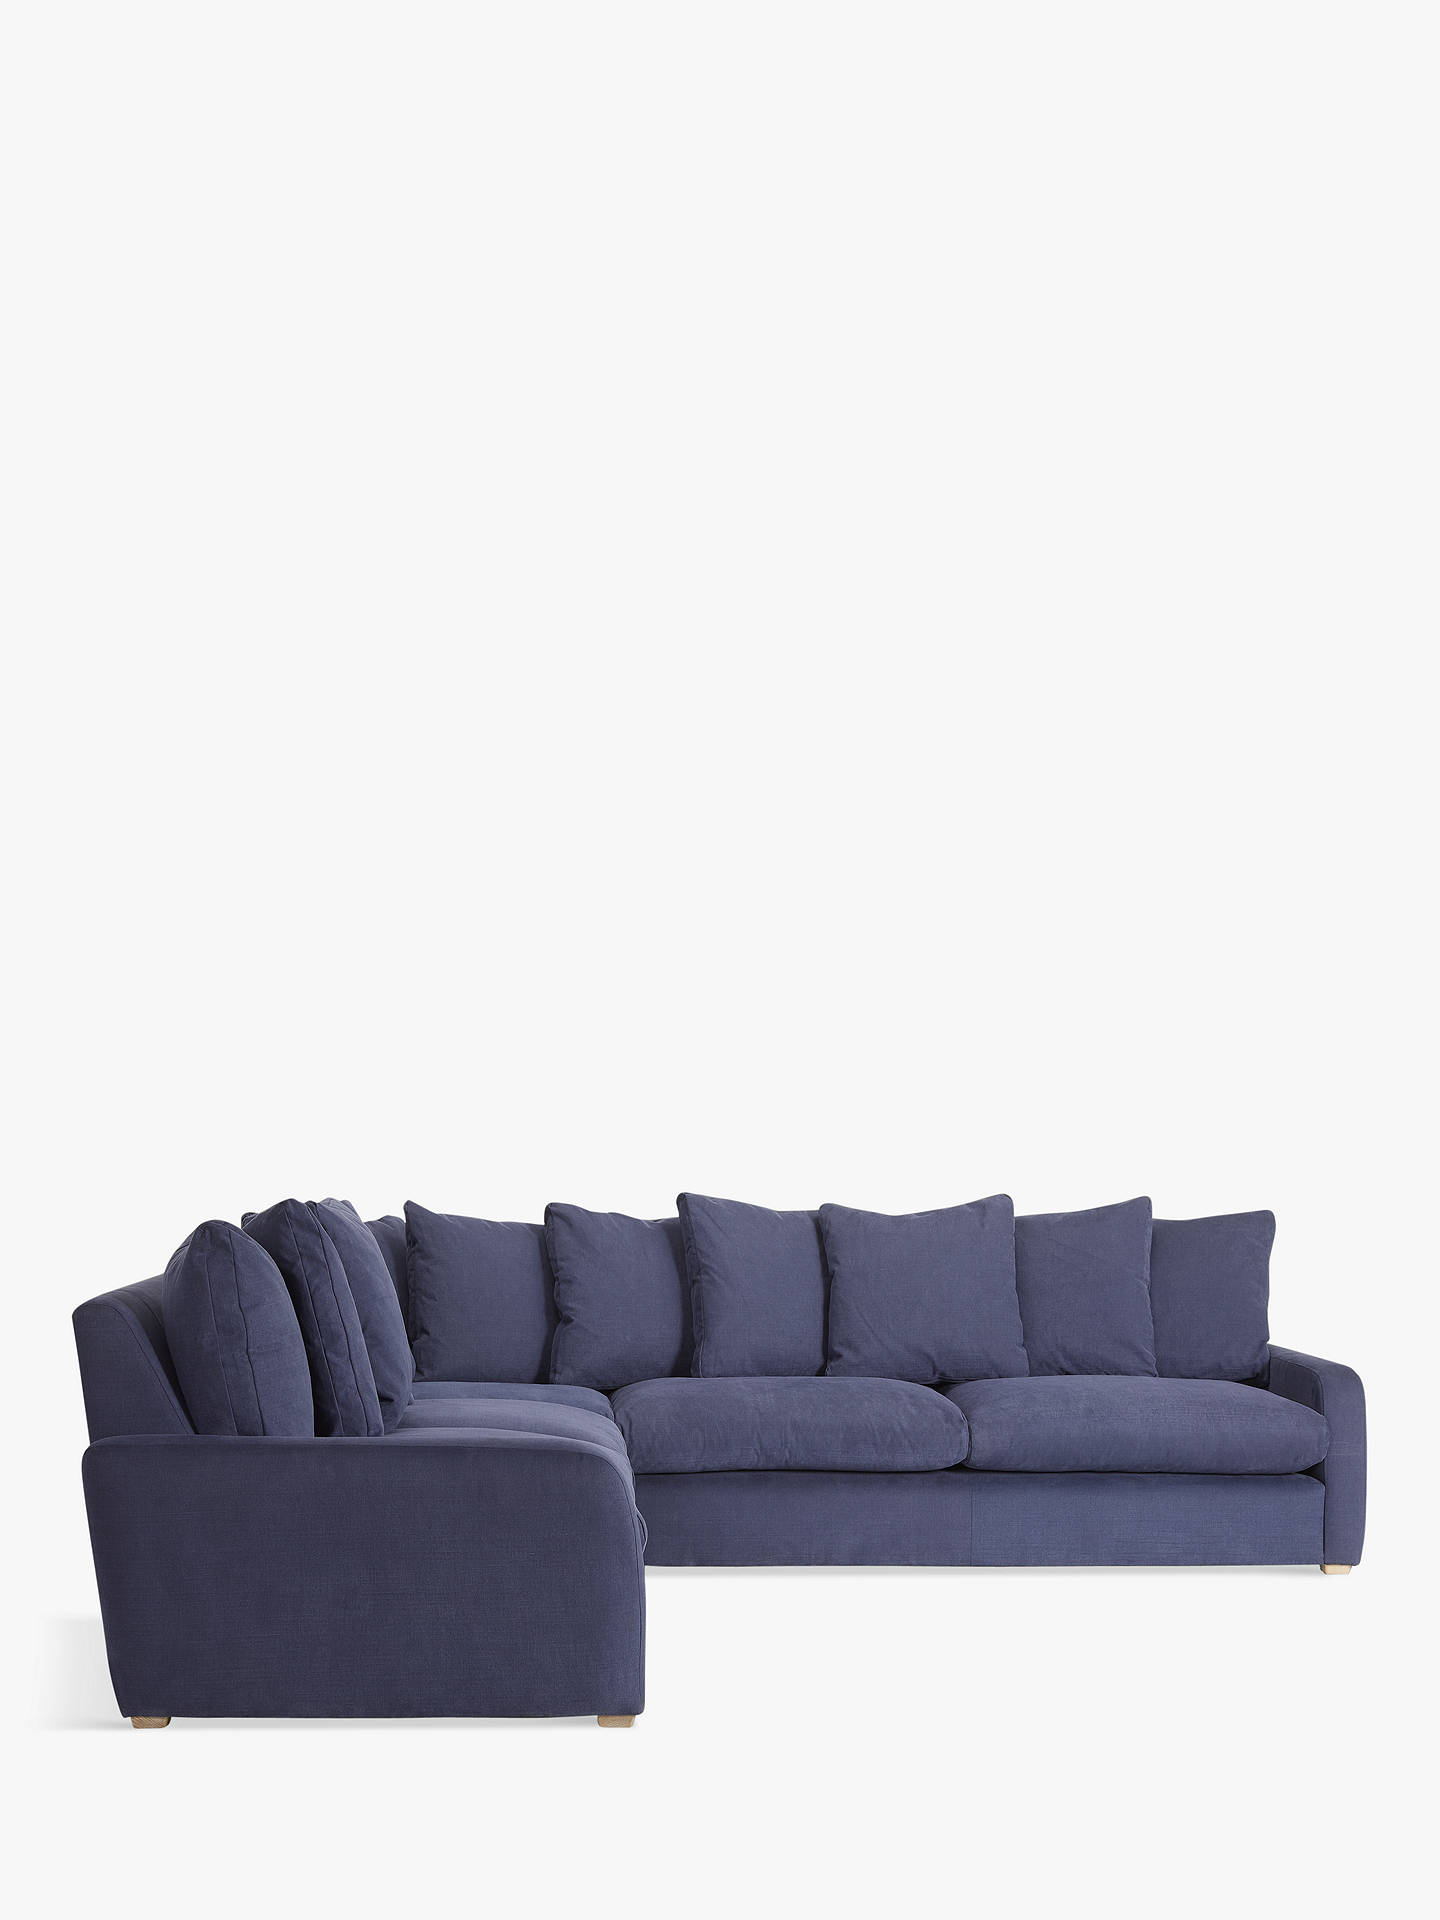 BuyFloppy Jo Large Corner Sofa by Loaf at John Lewis, Brushed Cotton Navy Online at johnlewis.com